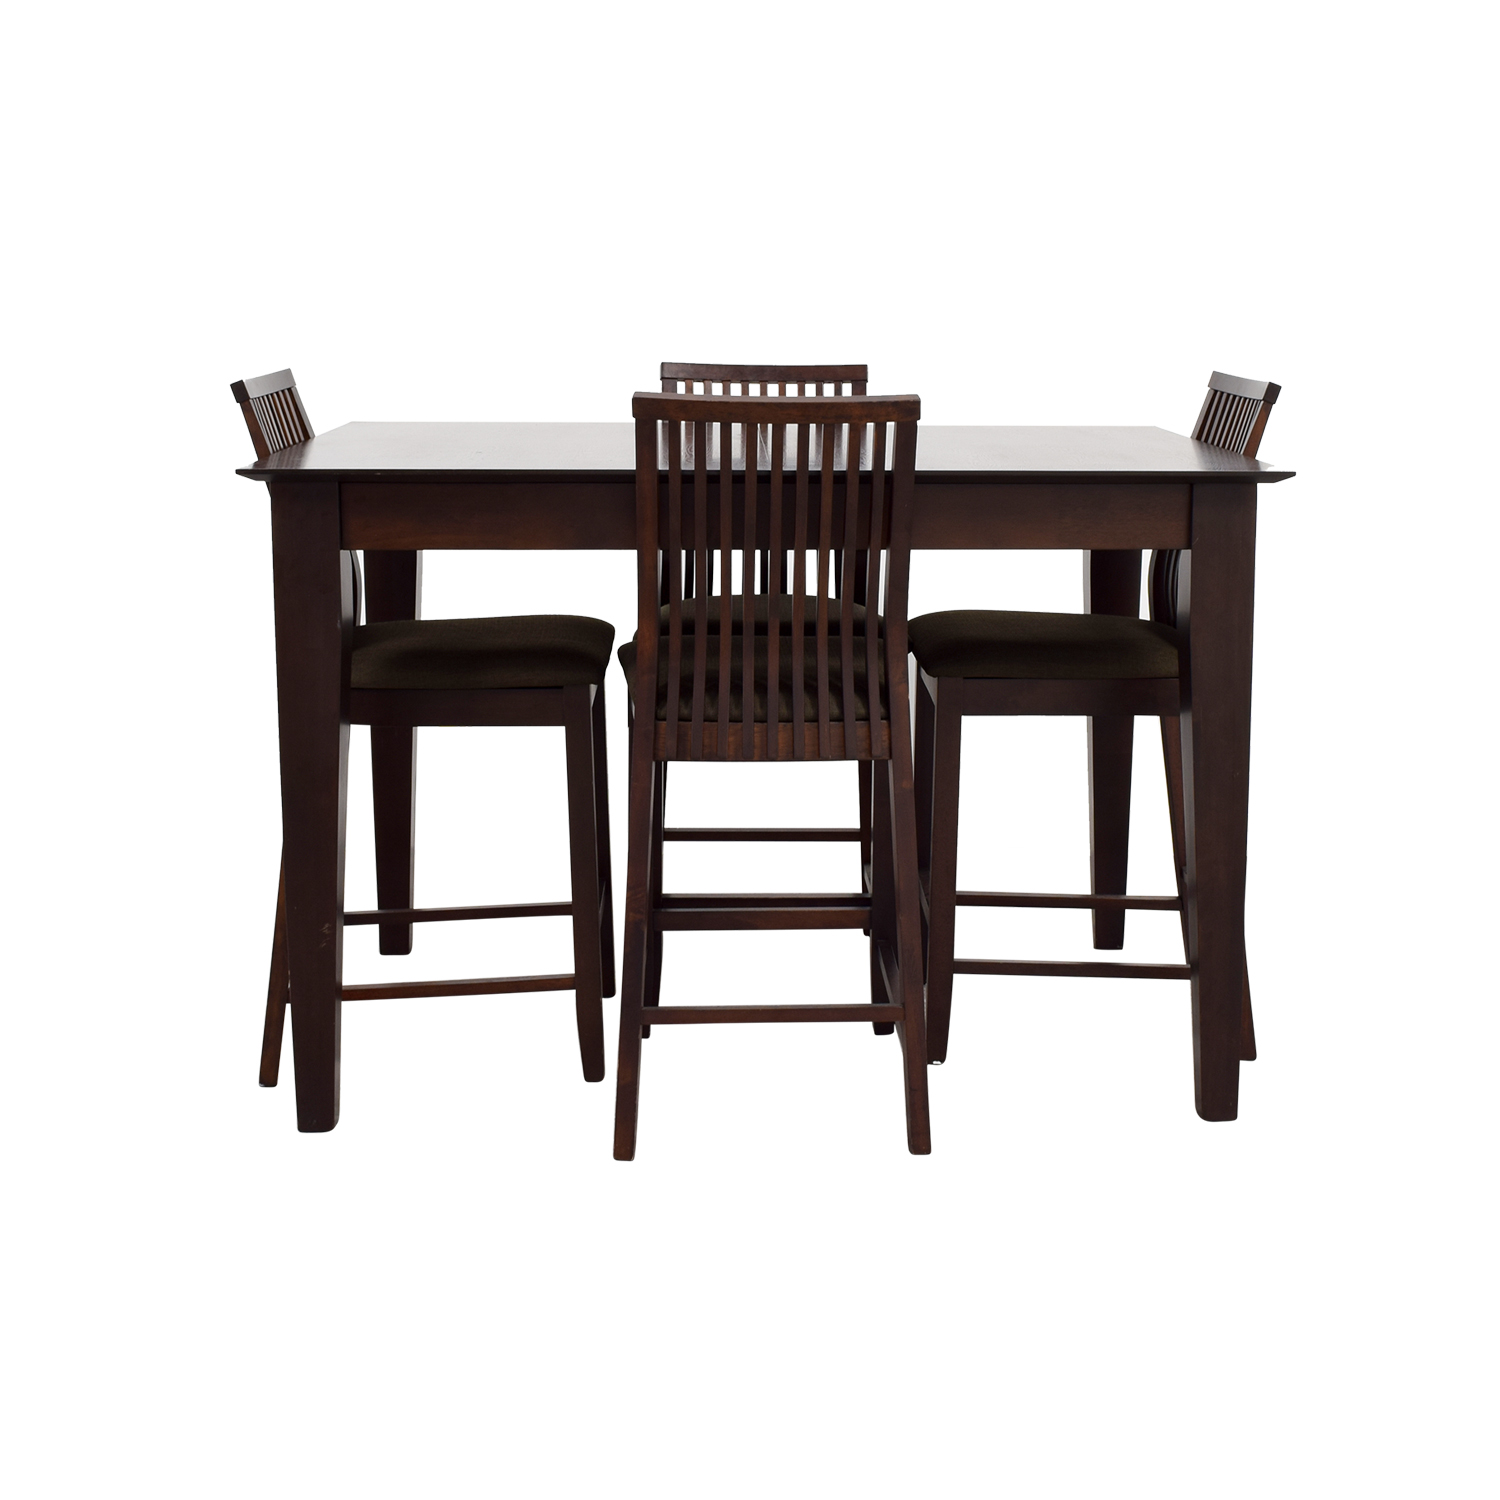 shop Raymour & Flanigan Raymour & Flanigan Dining Set online